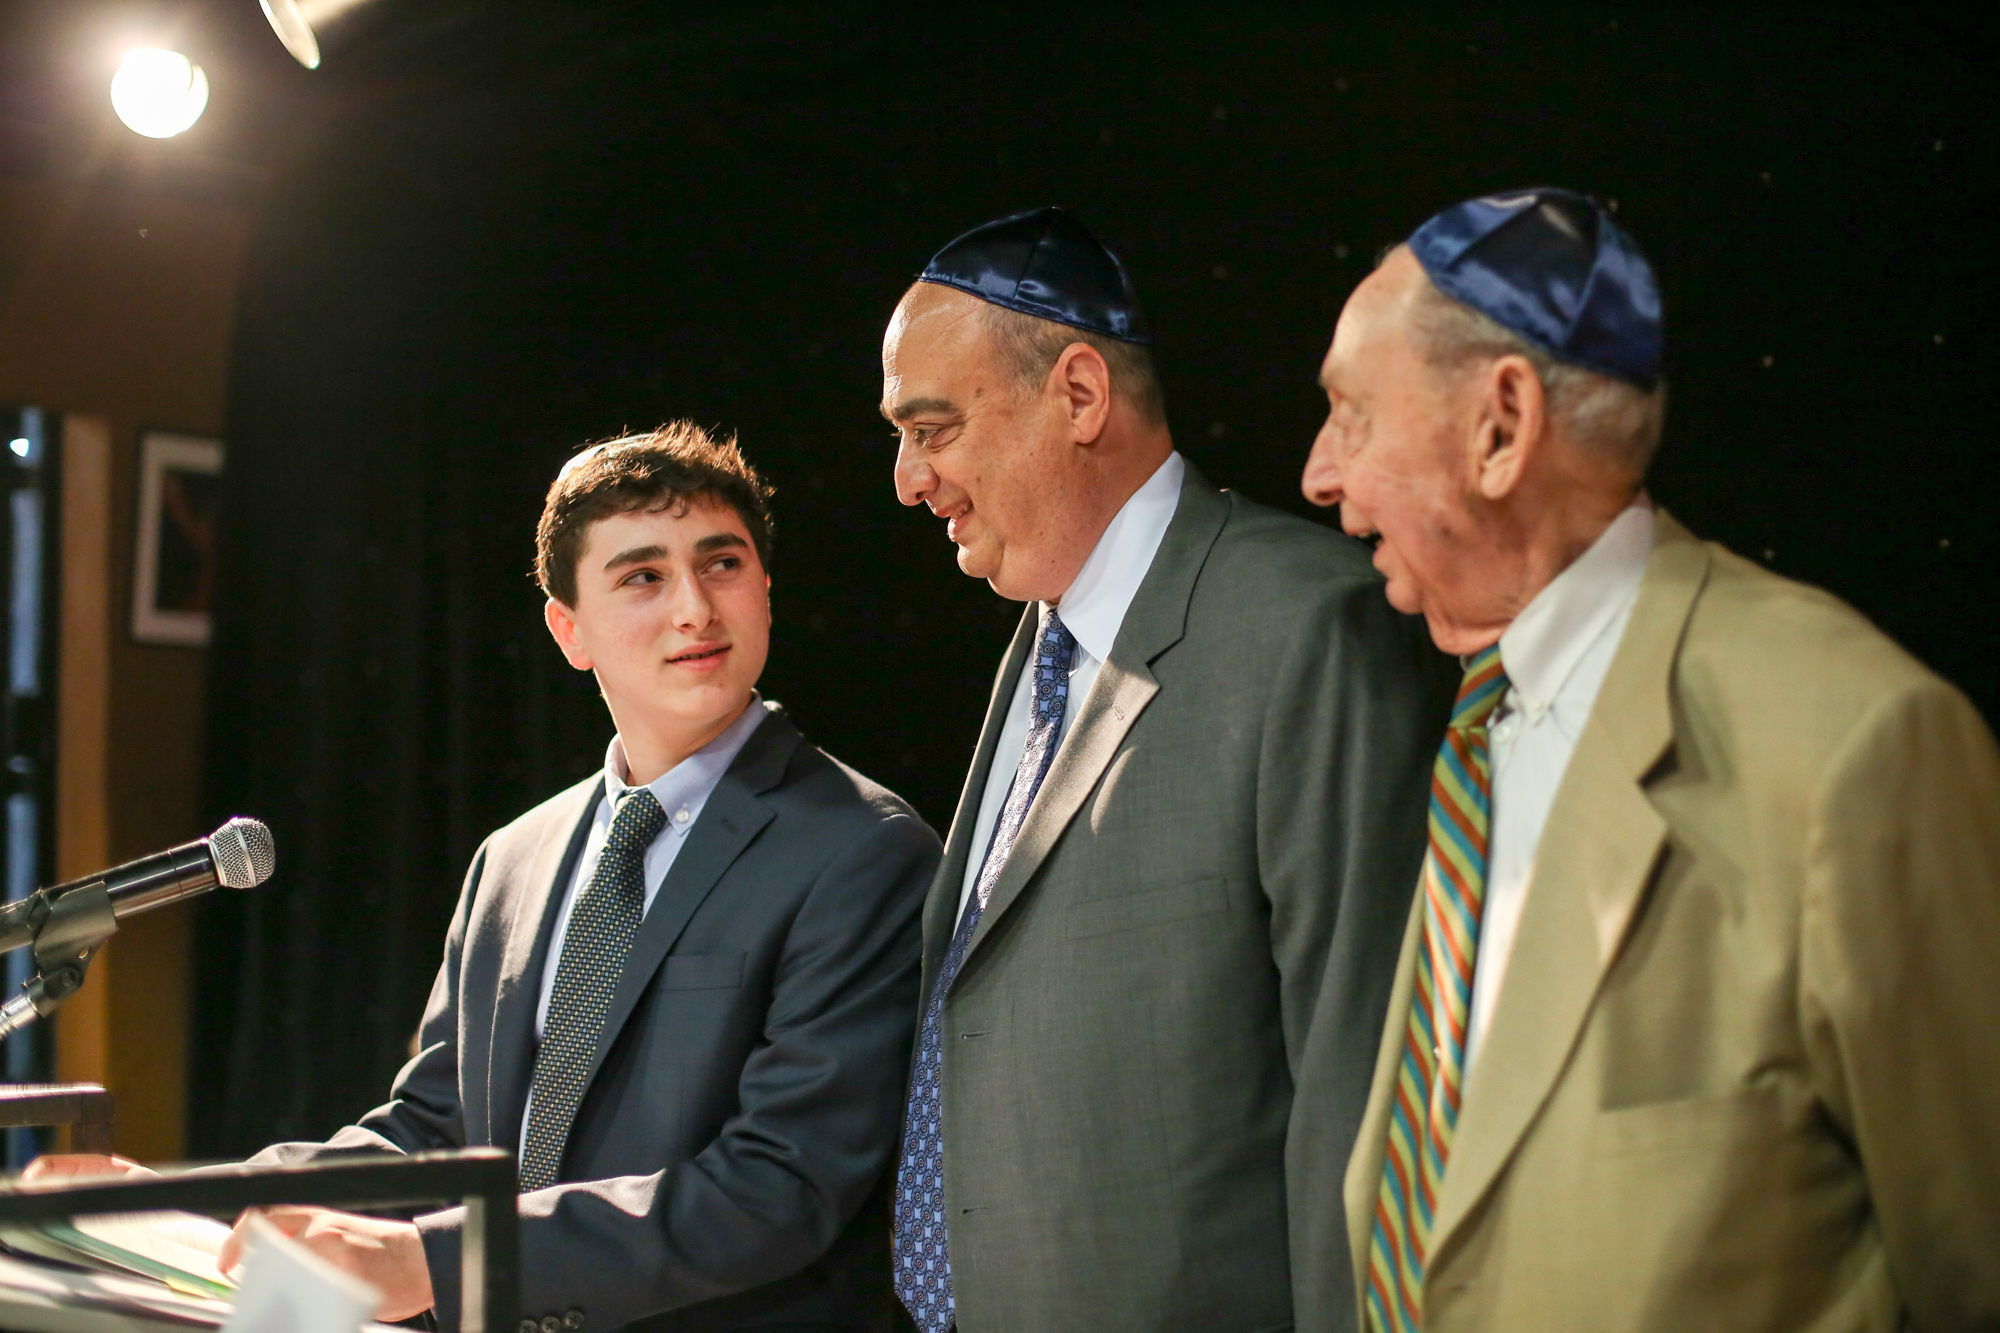 Max_Bar_Mitzvah_Preview (17 of 68).jpg